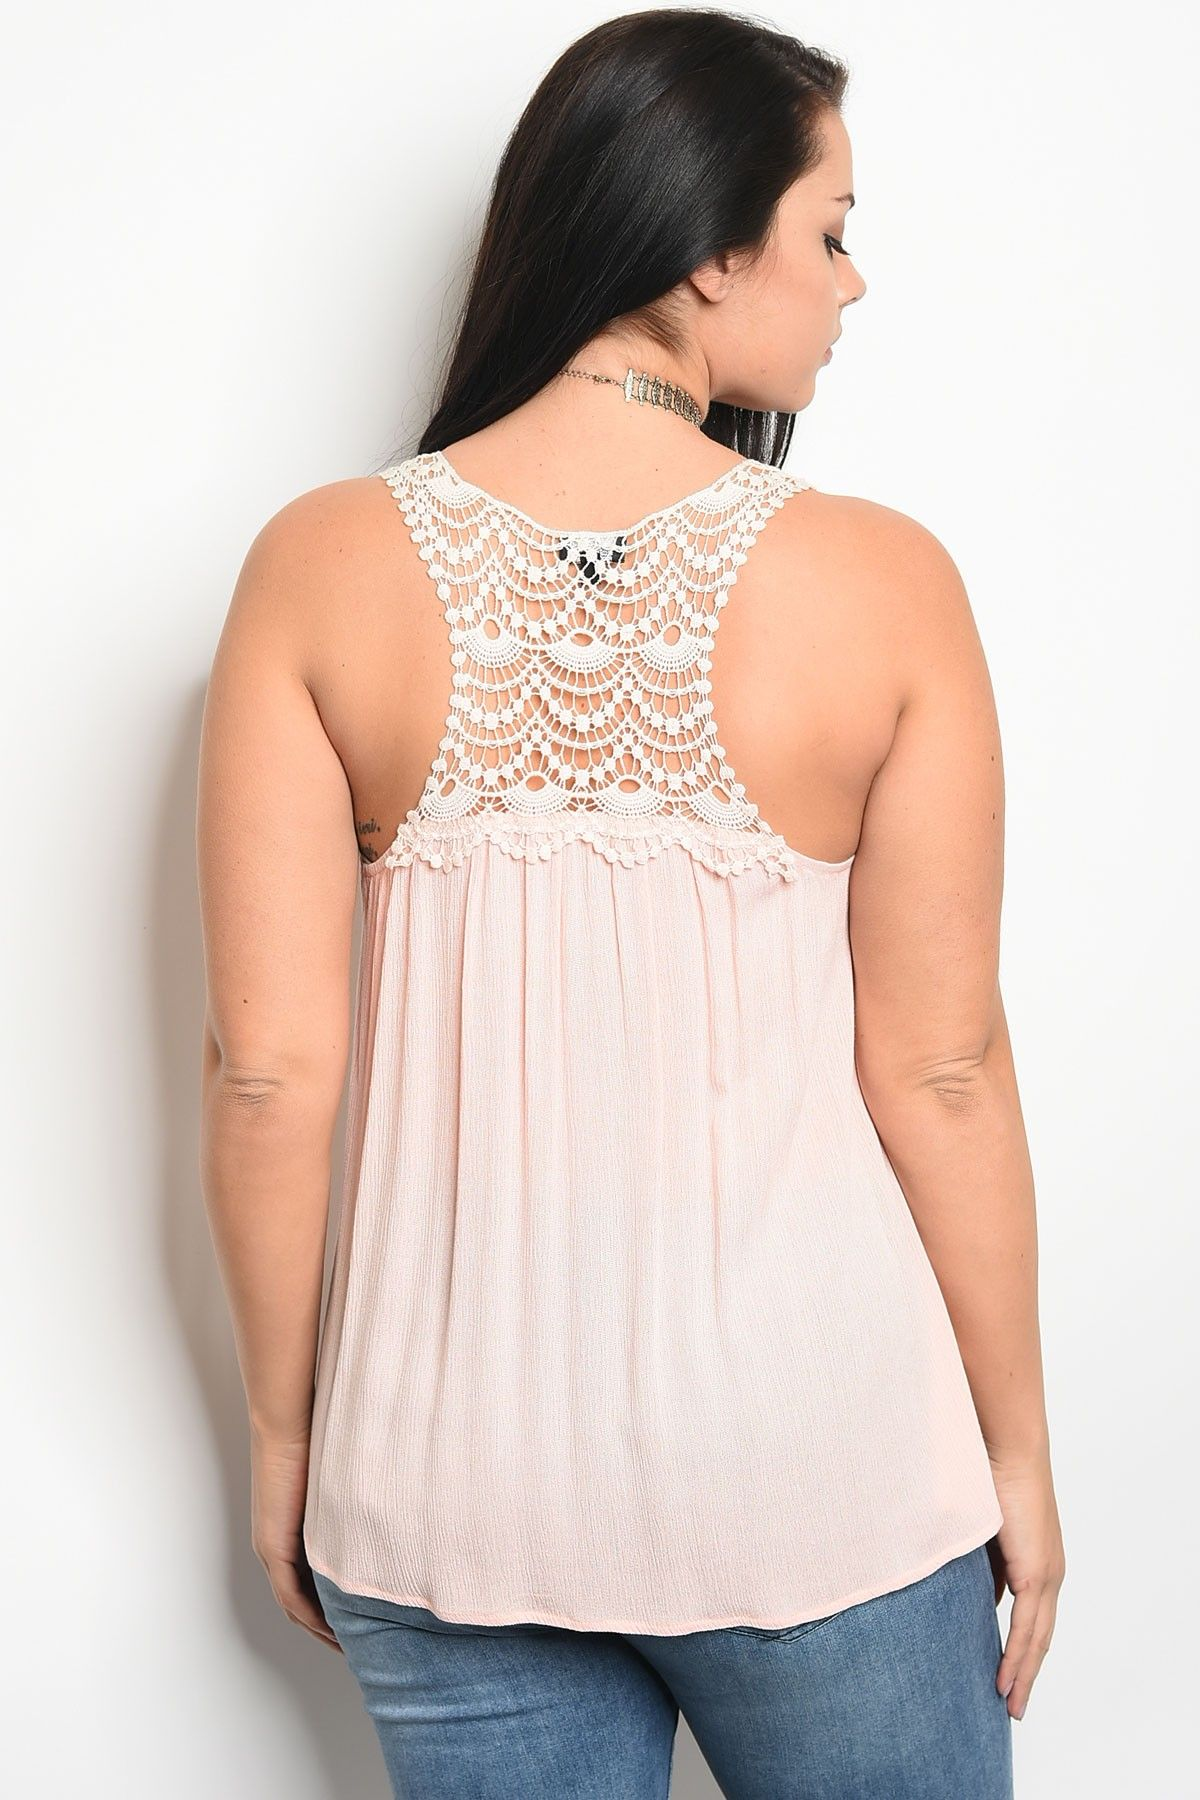 Ladies fashion plus size sleeveless top that features a v neckline and lace details